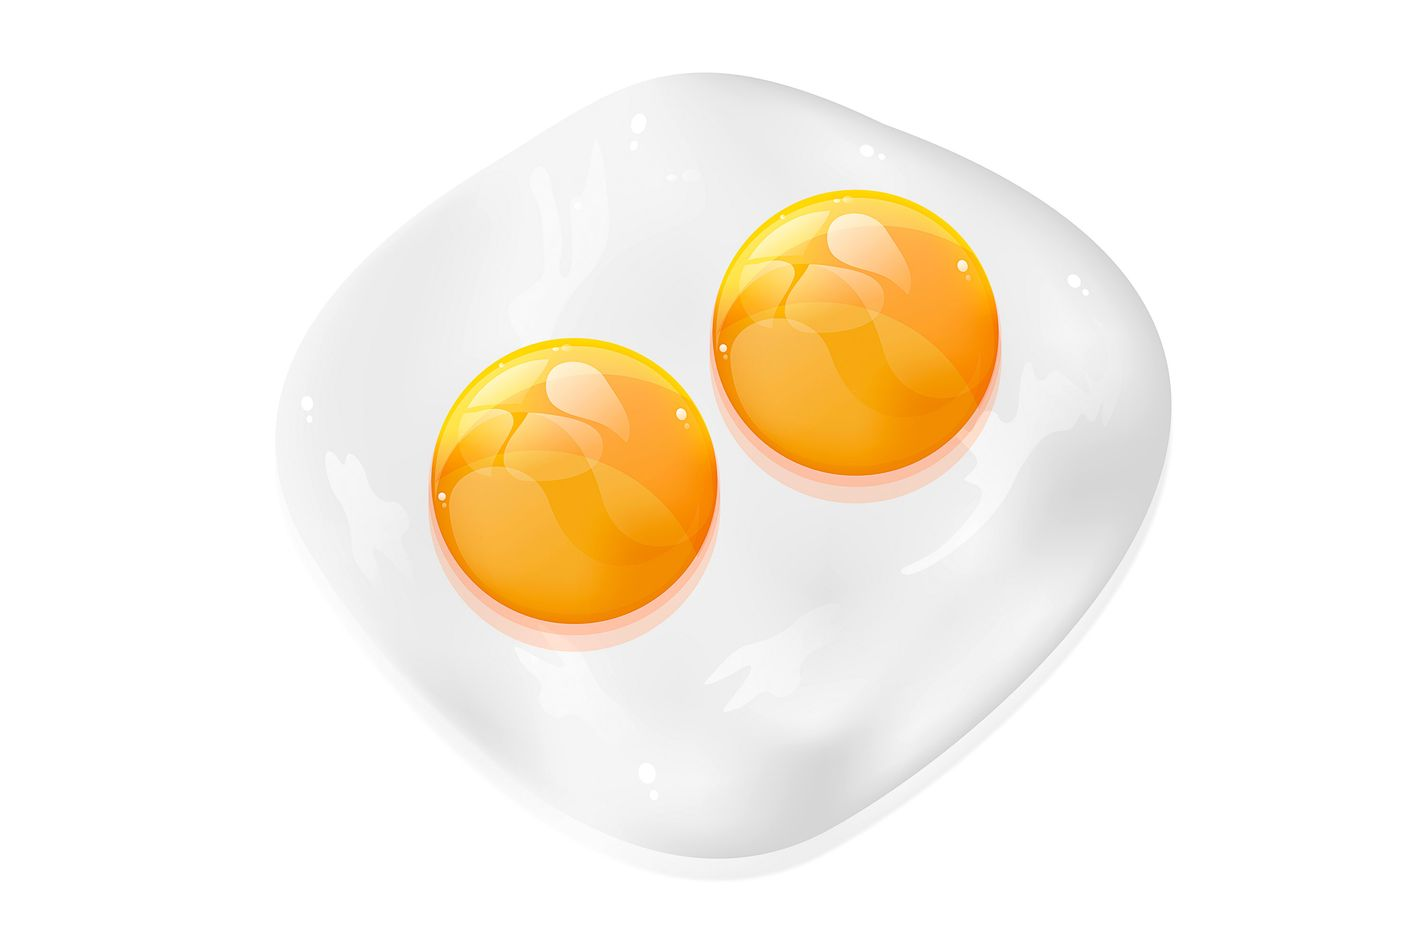 Triple yolks also happen occasionally.